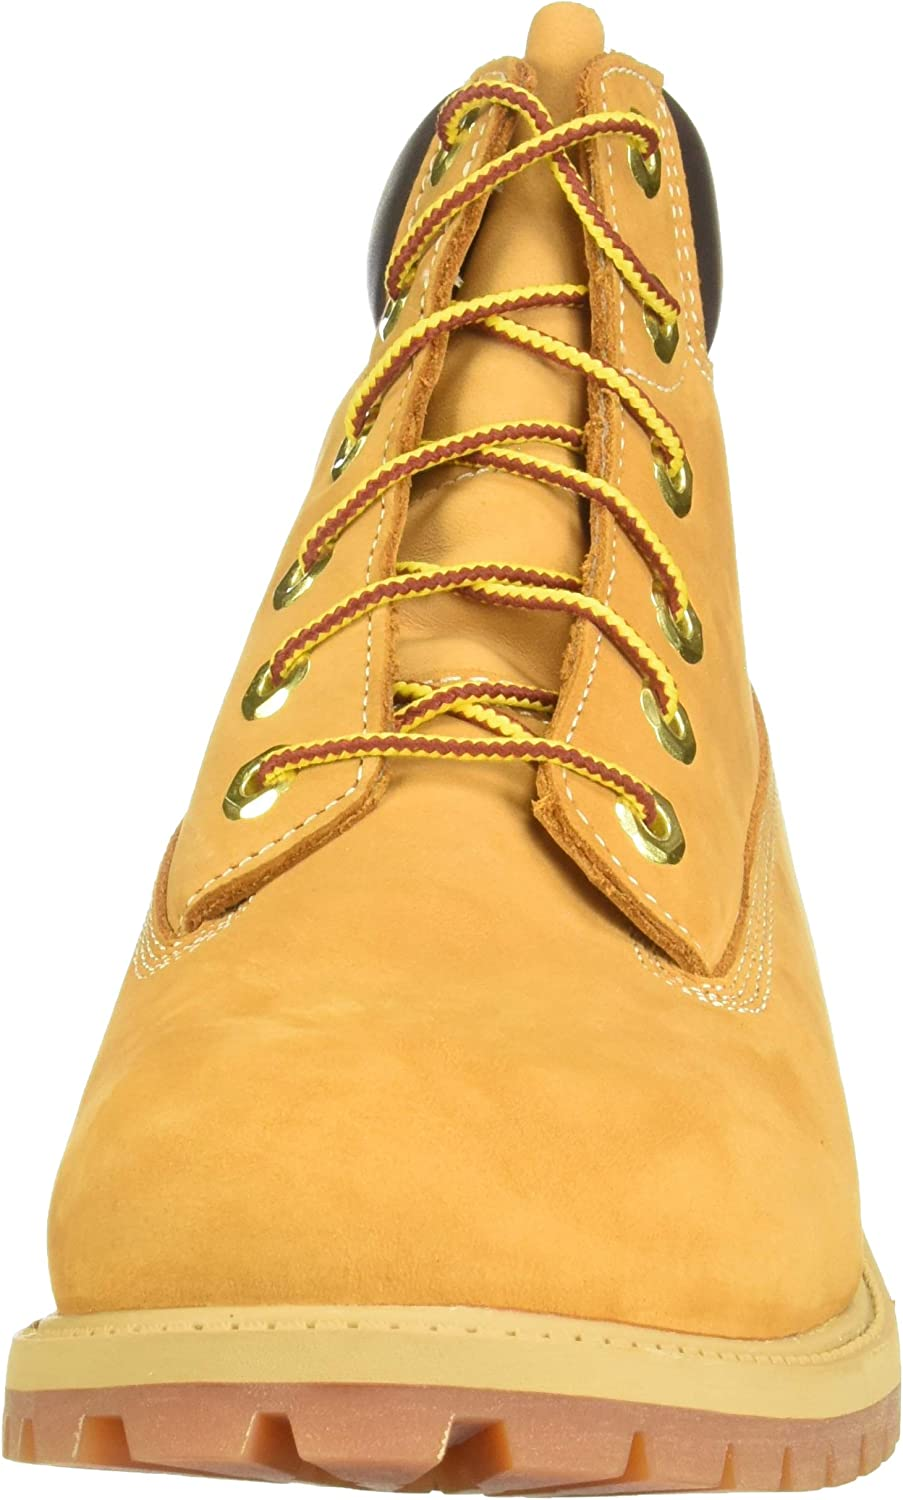 Timberland 6-inch Premium WP, Bottes Mixte Enfant Marron (Wheat Yellow)